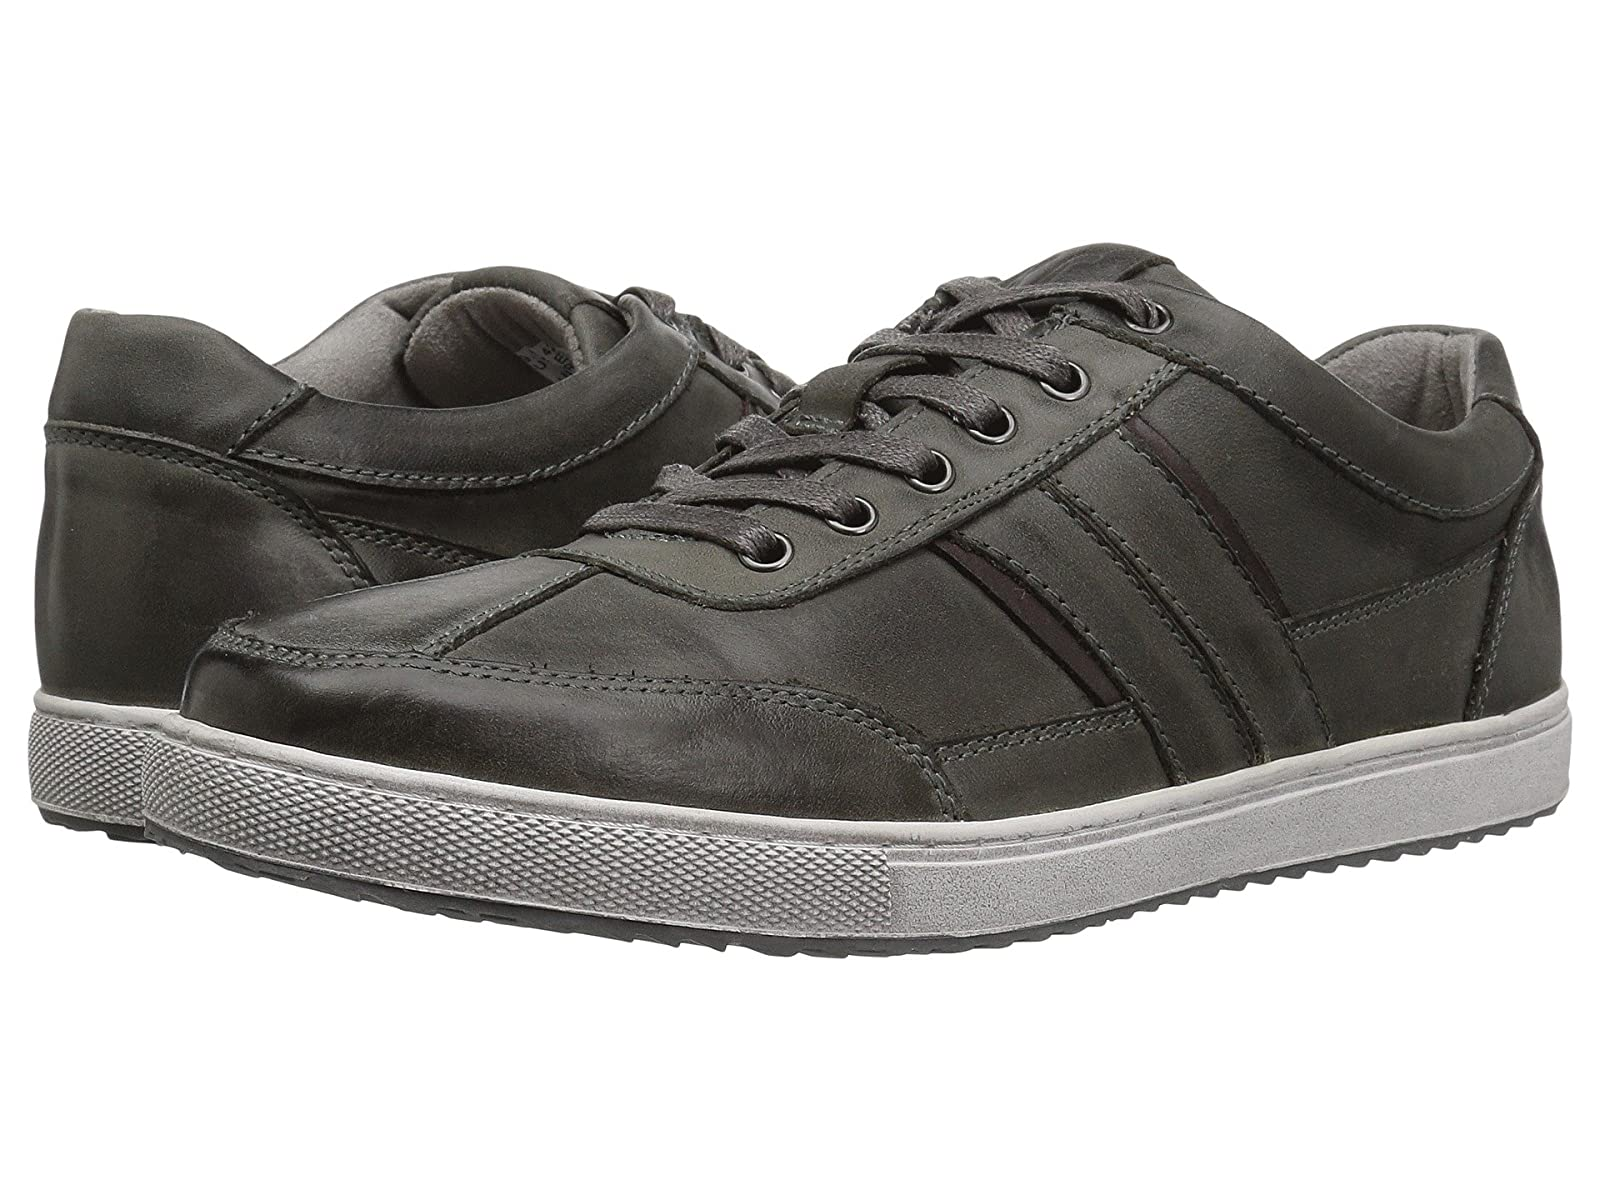 Kenneth Cole Reaction Sprinter SneakerAtmospheric grades have affordable shoes